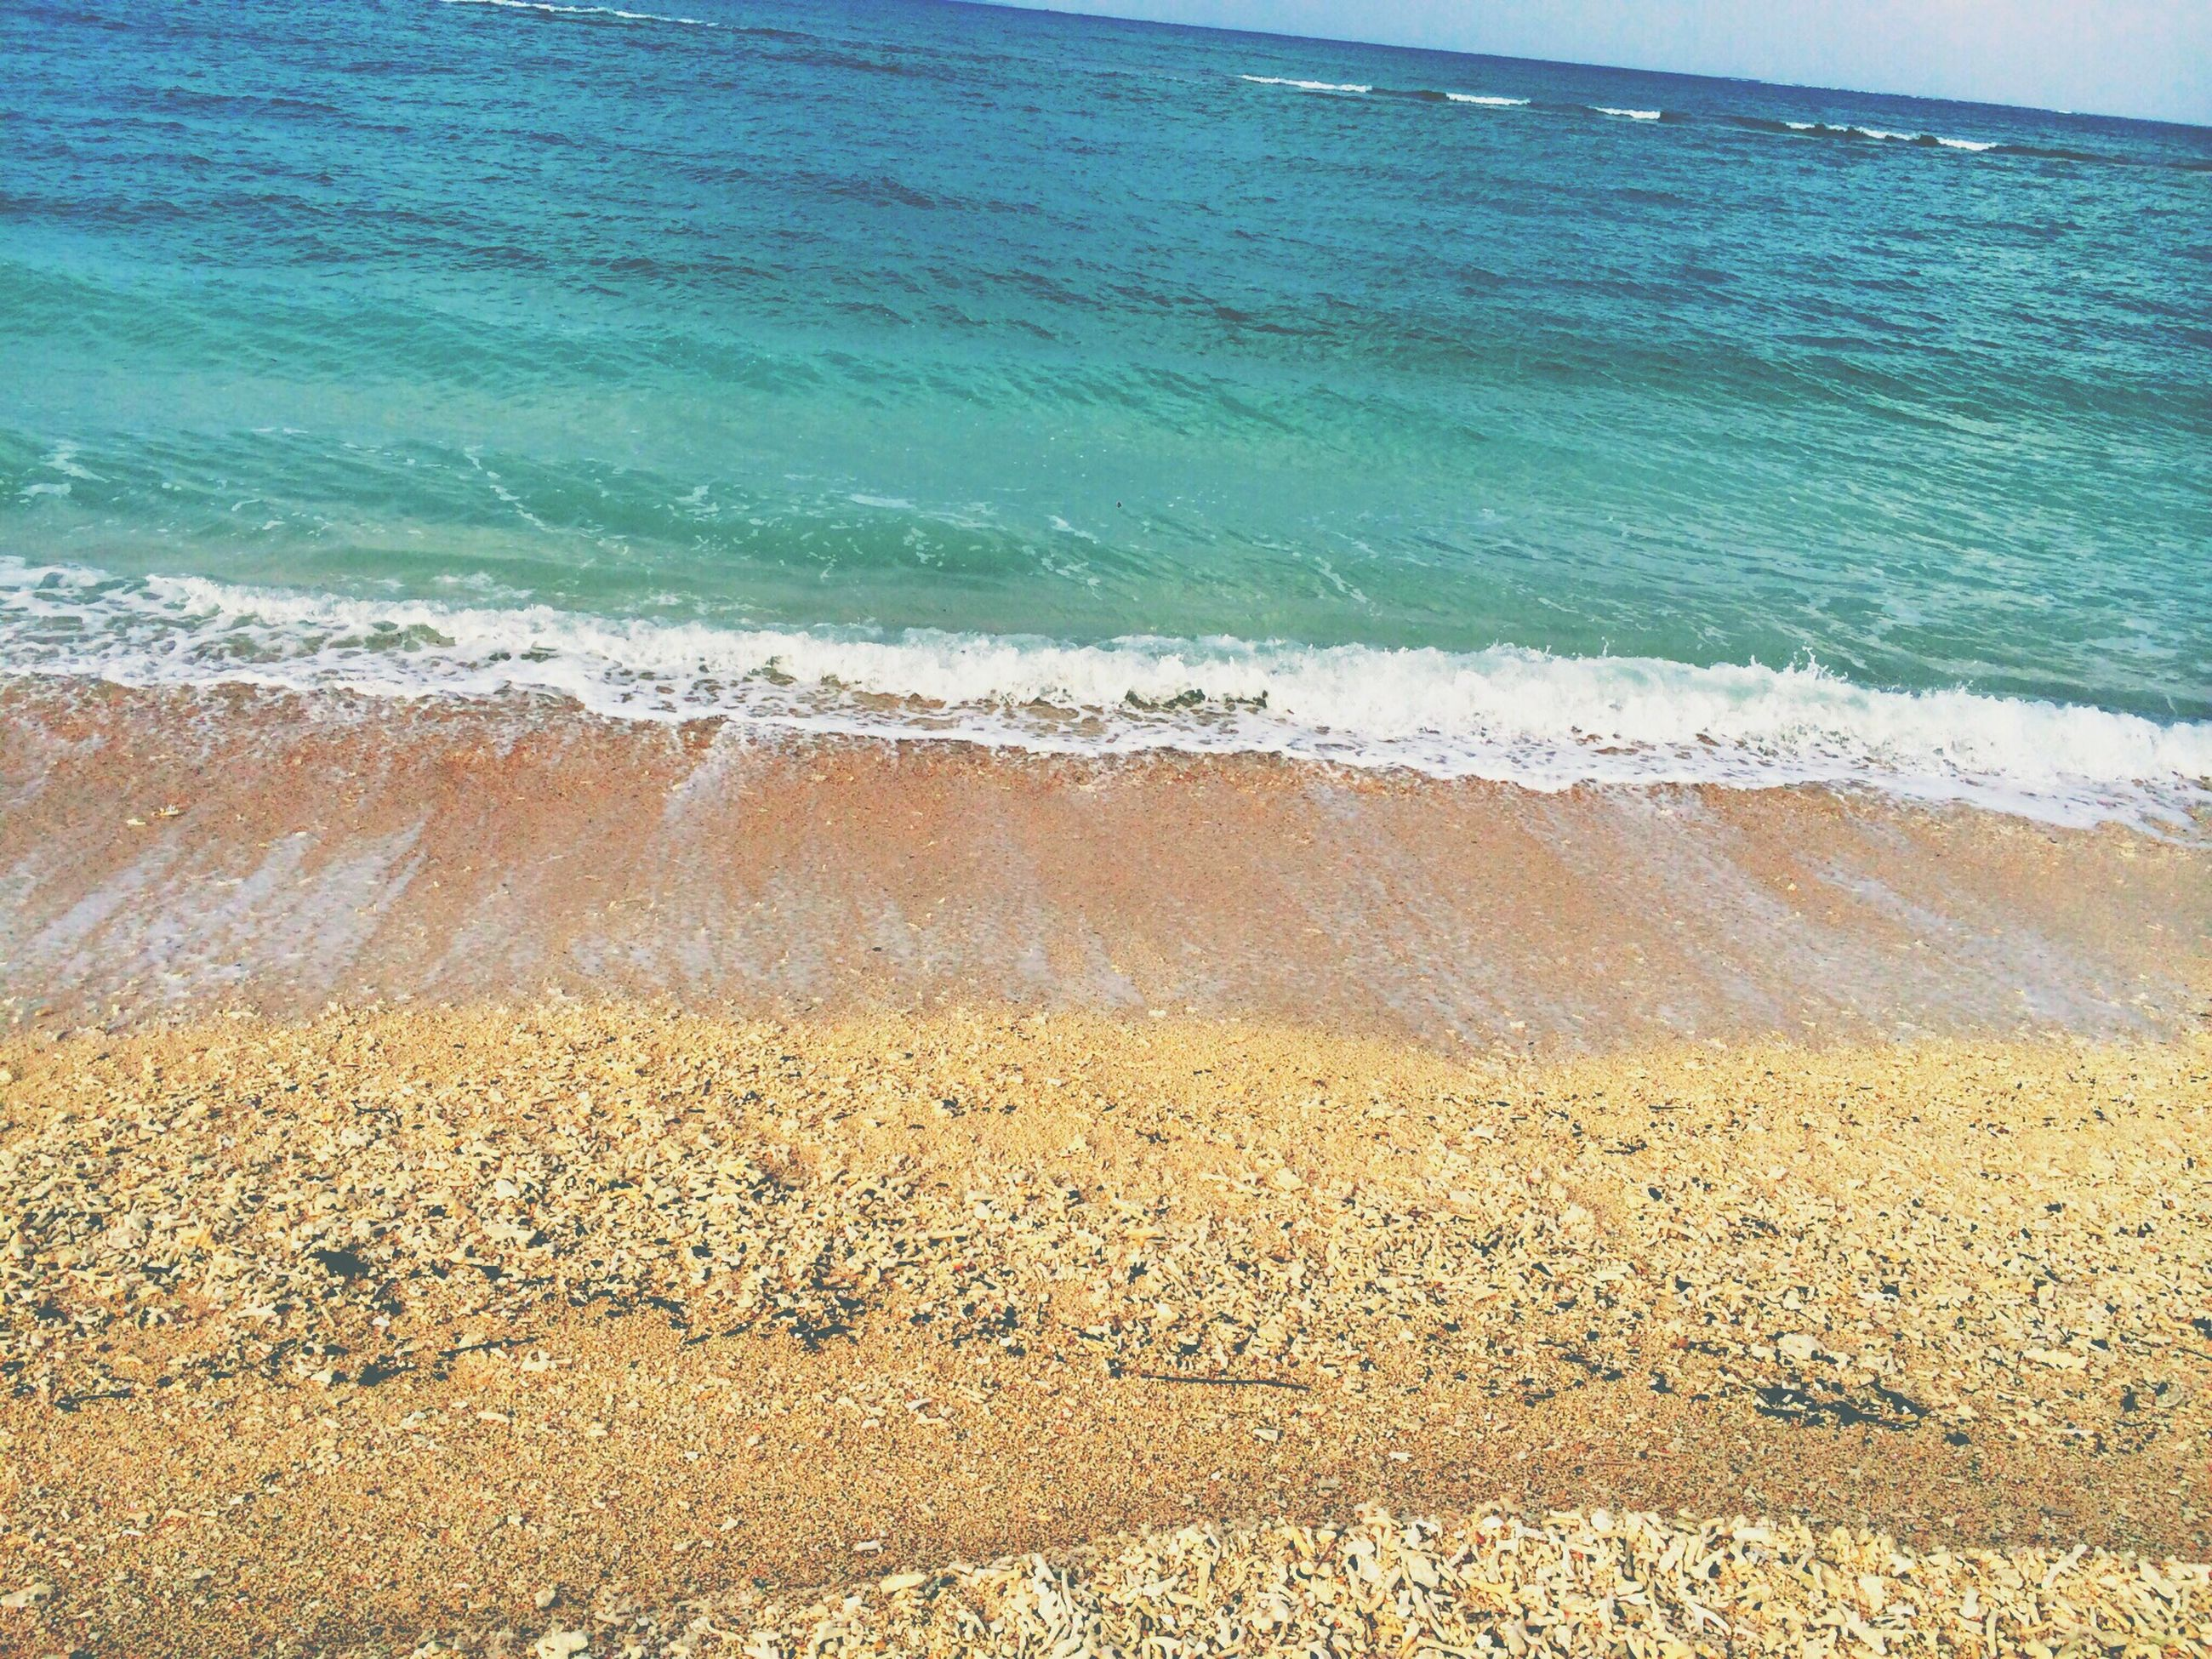 sea, beach, water, sand, horizon over water, shore, wave, tranquility, scenics, beauty in nature, surf, tranquil scene, nature, coastline, idyllic, blue, sky, day, outdoors, no people